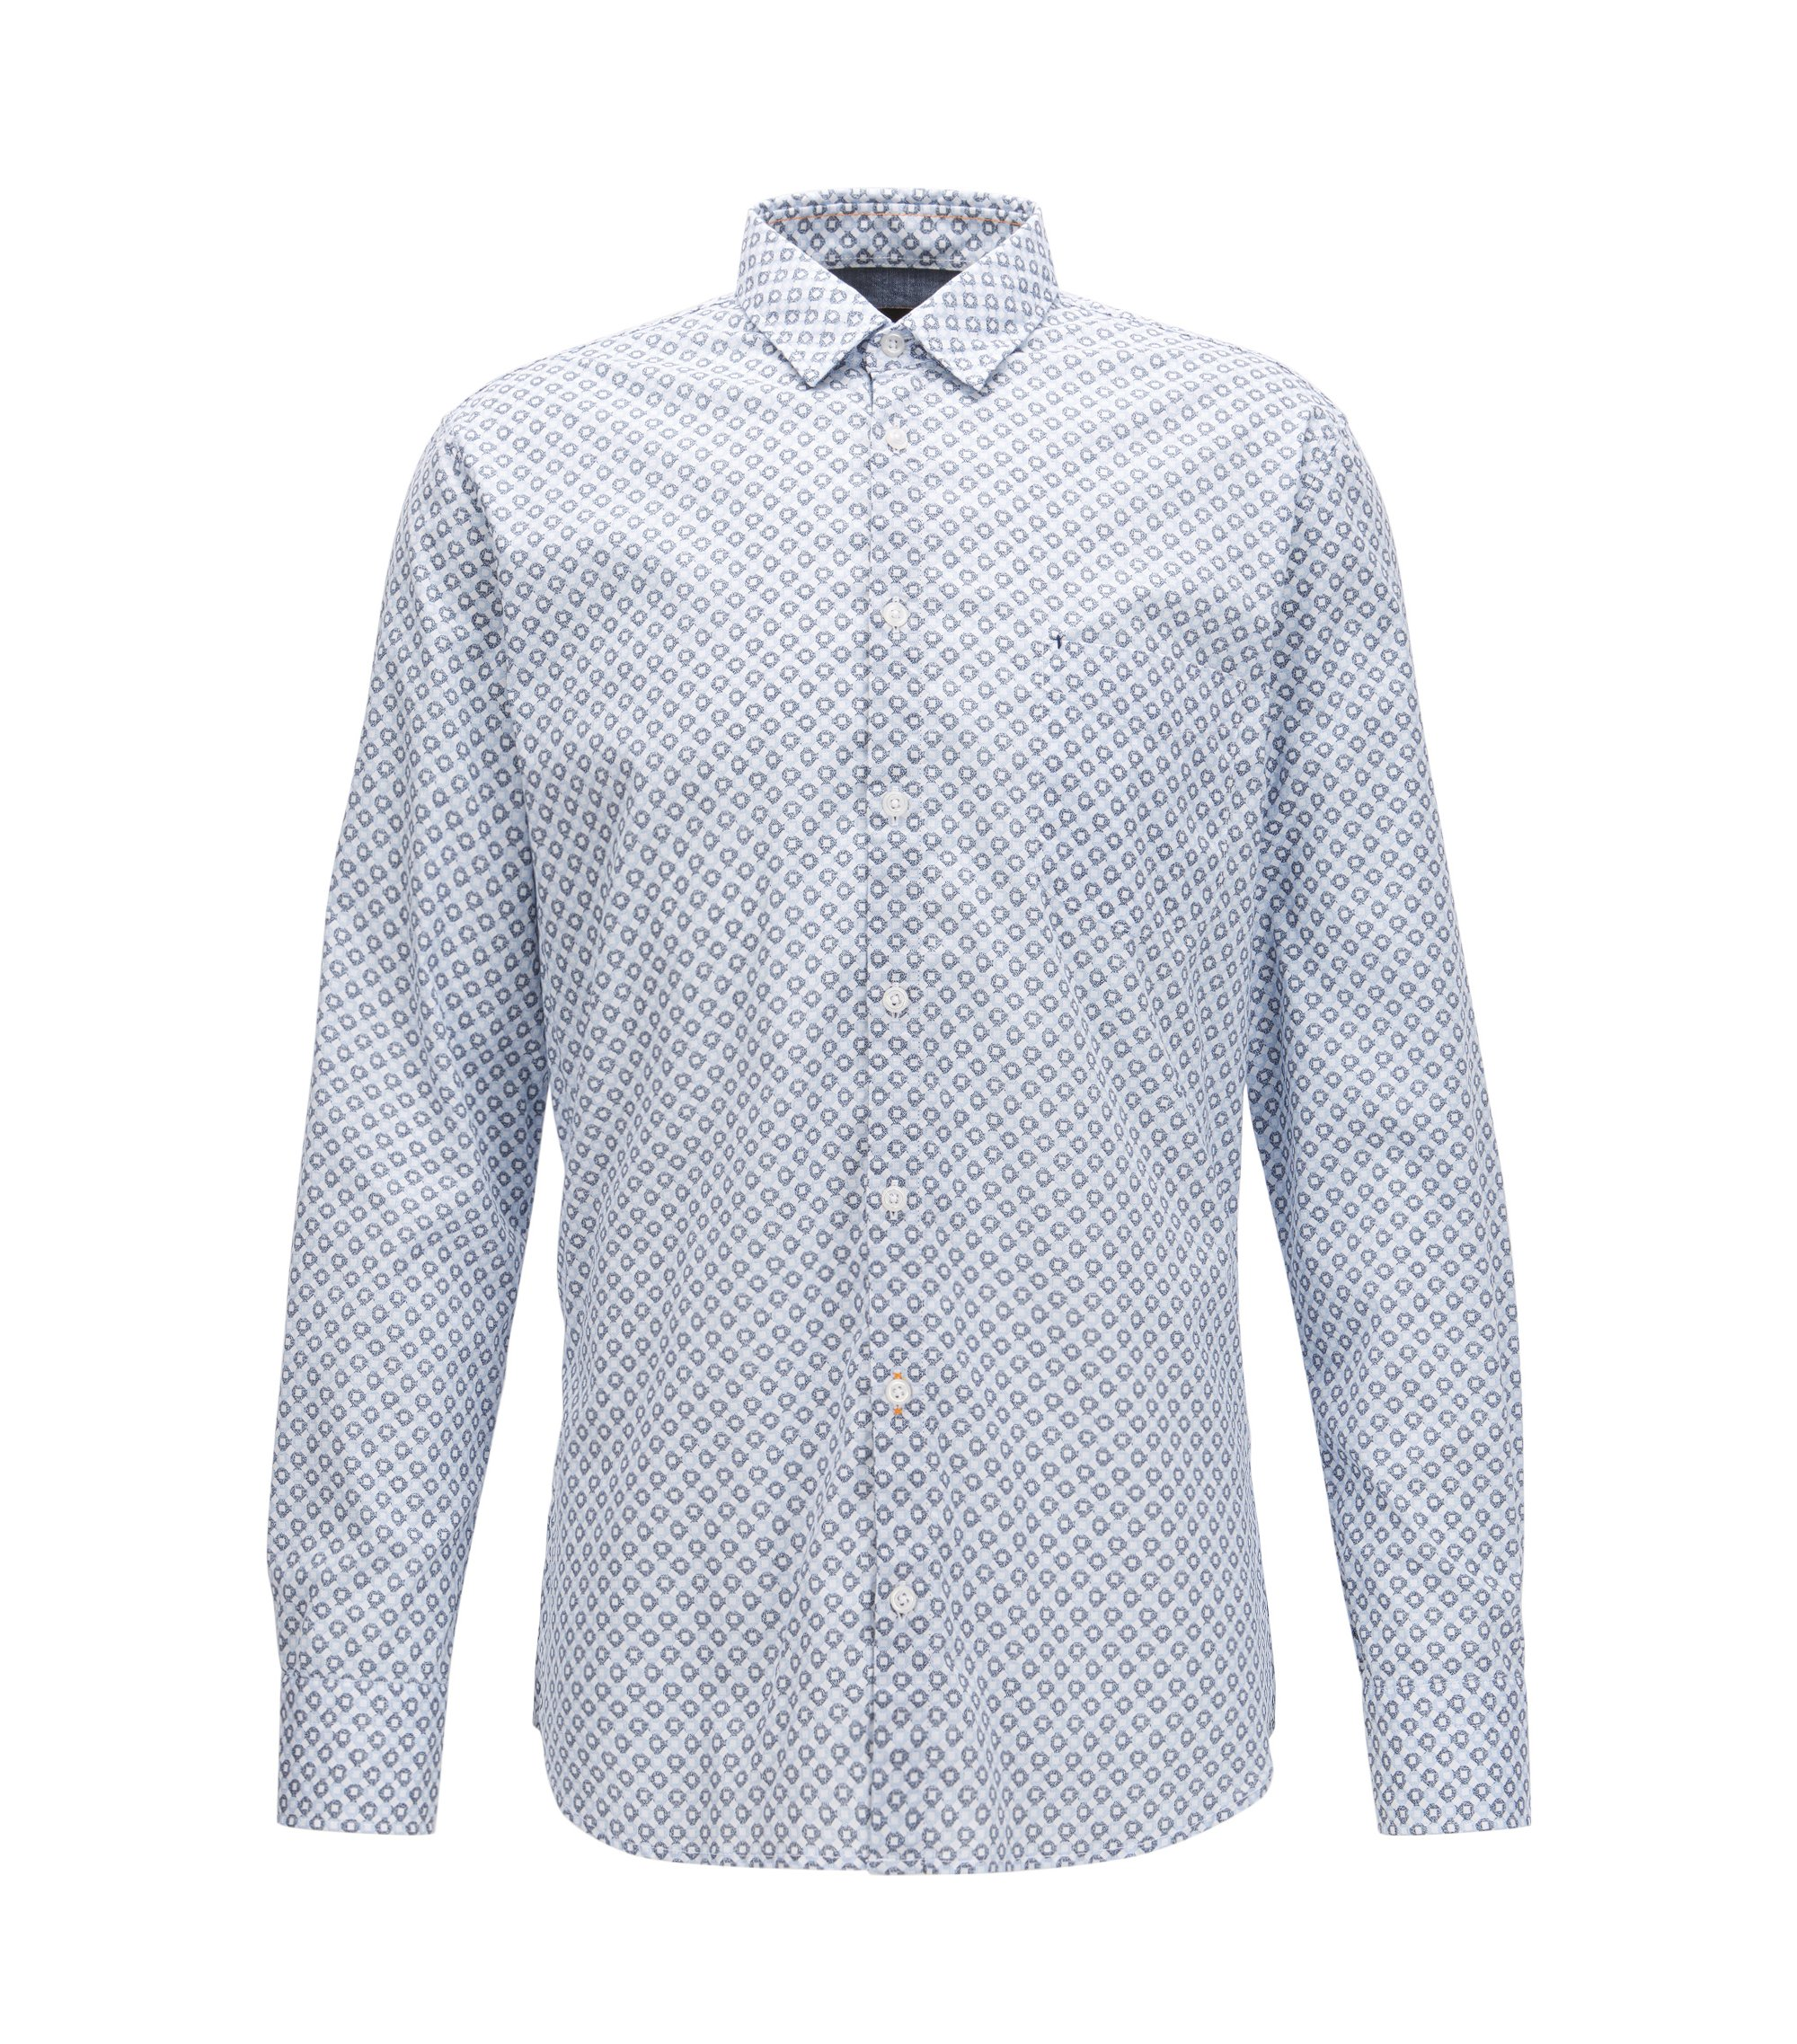 Slim-fit shirt in enzyme-washed stretch cotton , Patterned